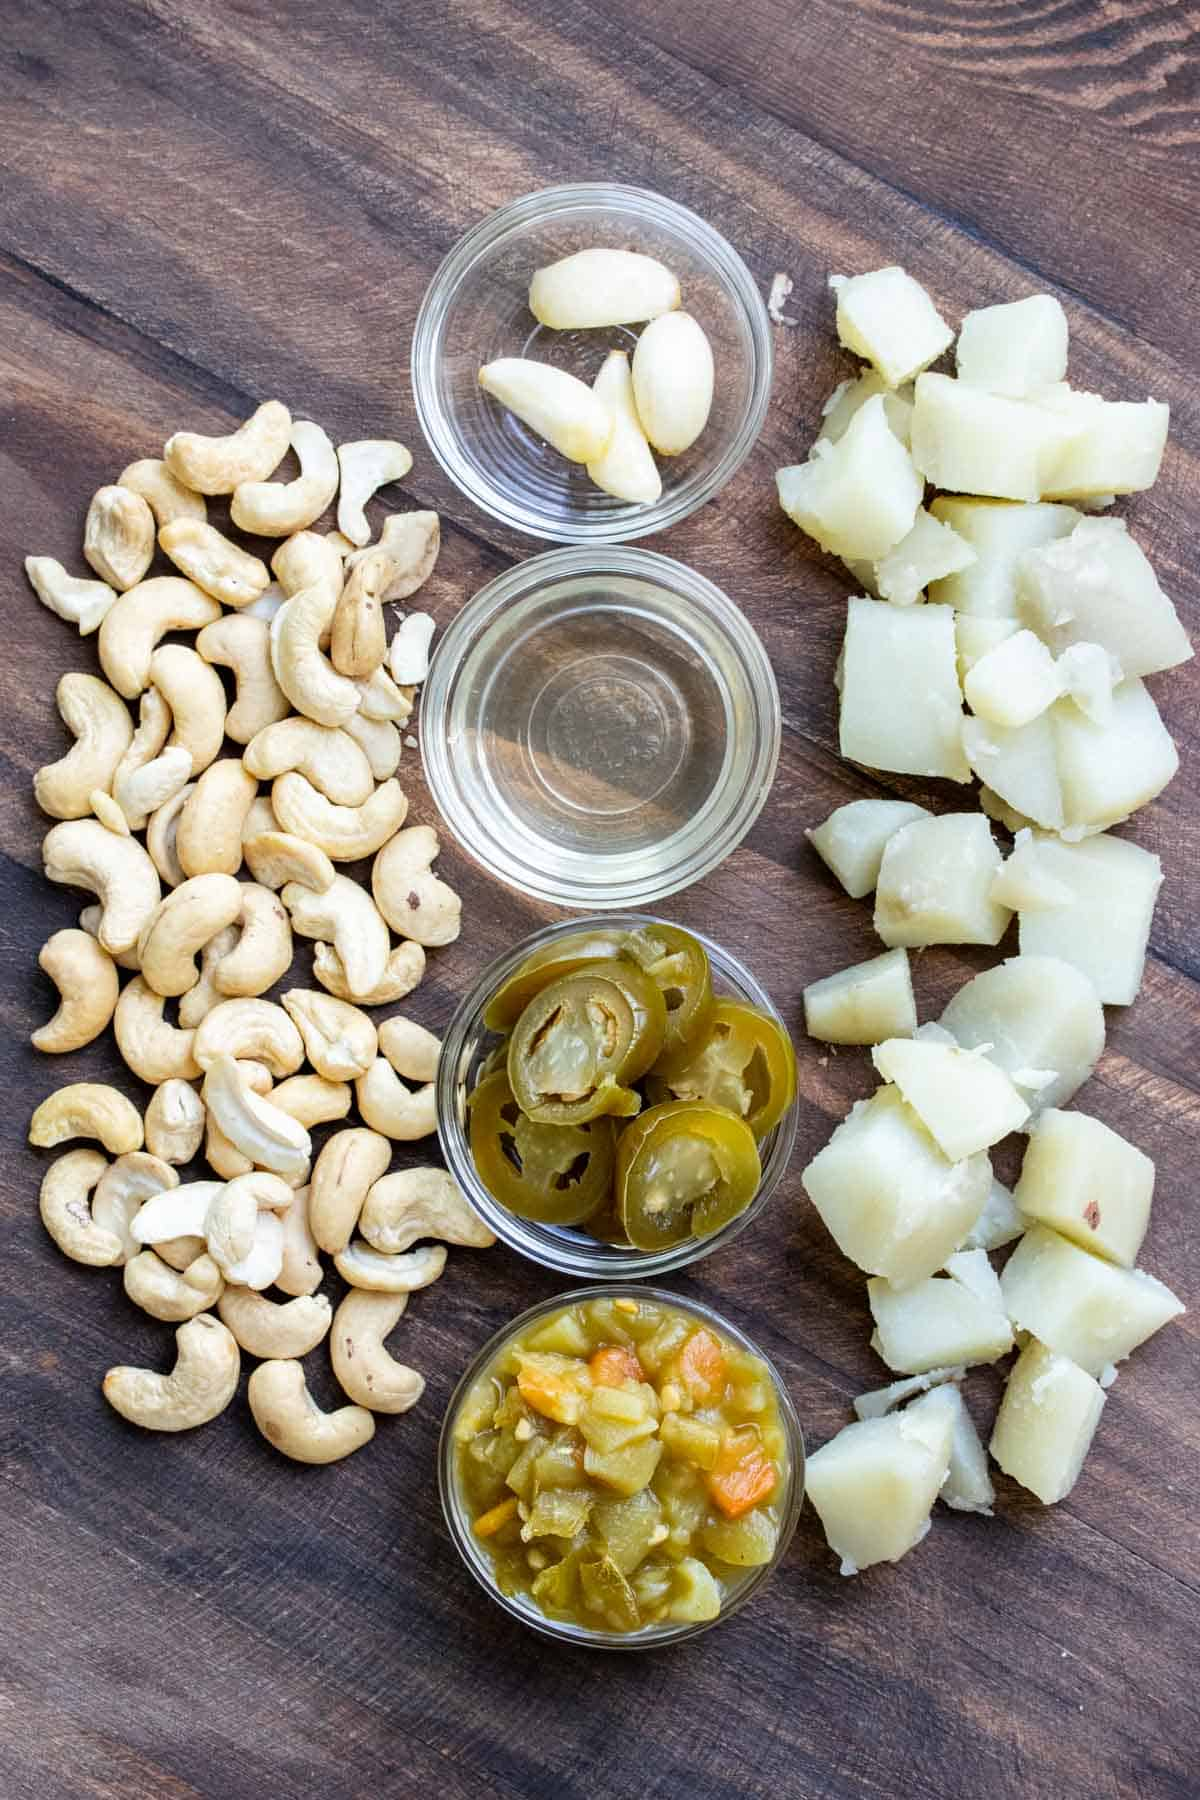 Pile of cashews and potatoes, and garlic, chiles, jalapeño slices and jalapeño juice in glass bowls